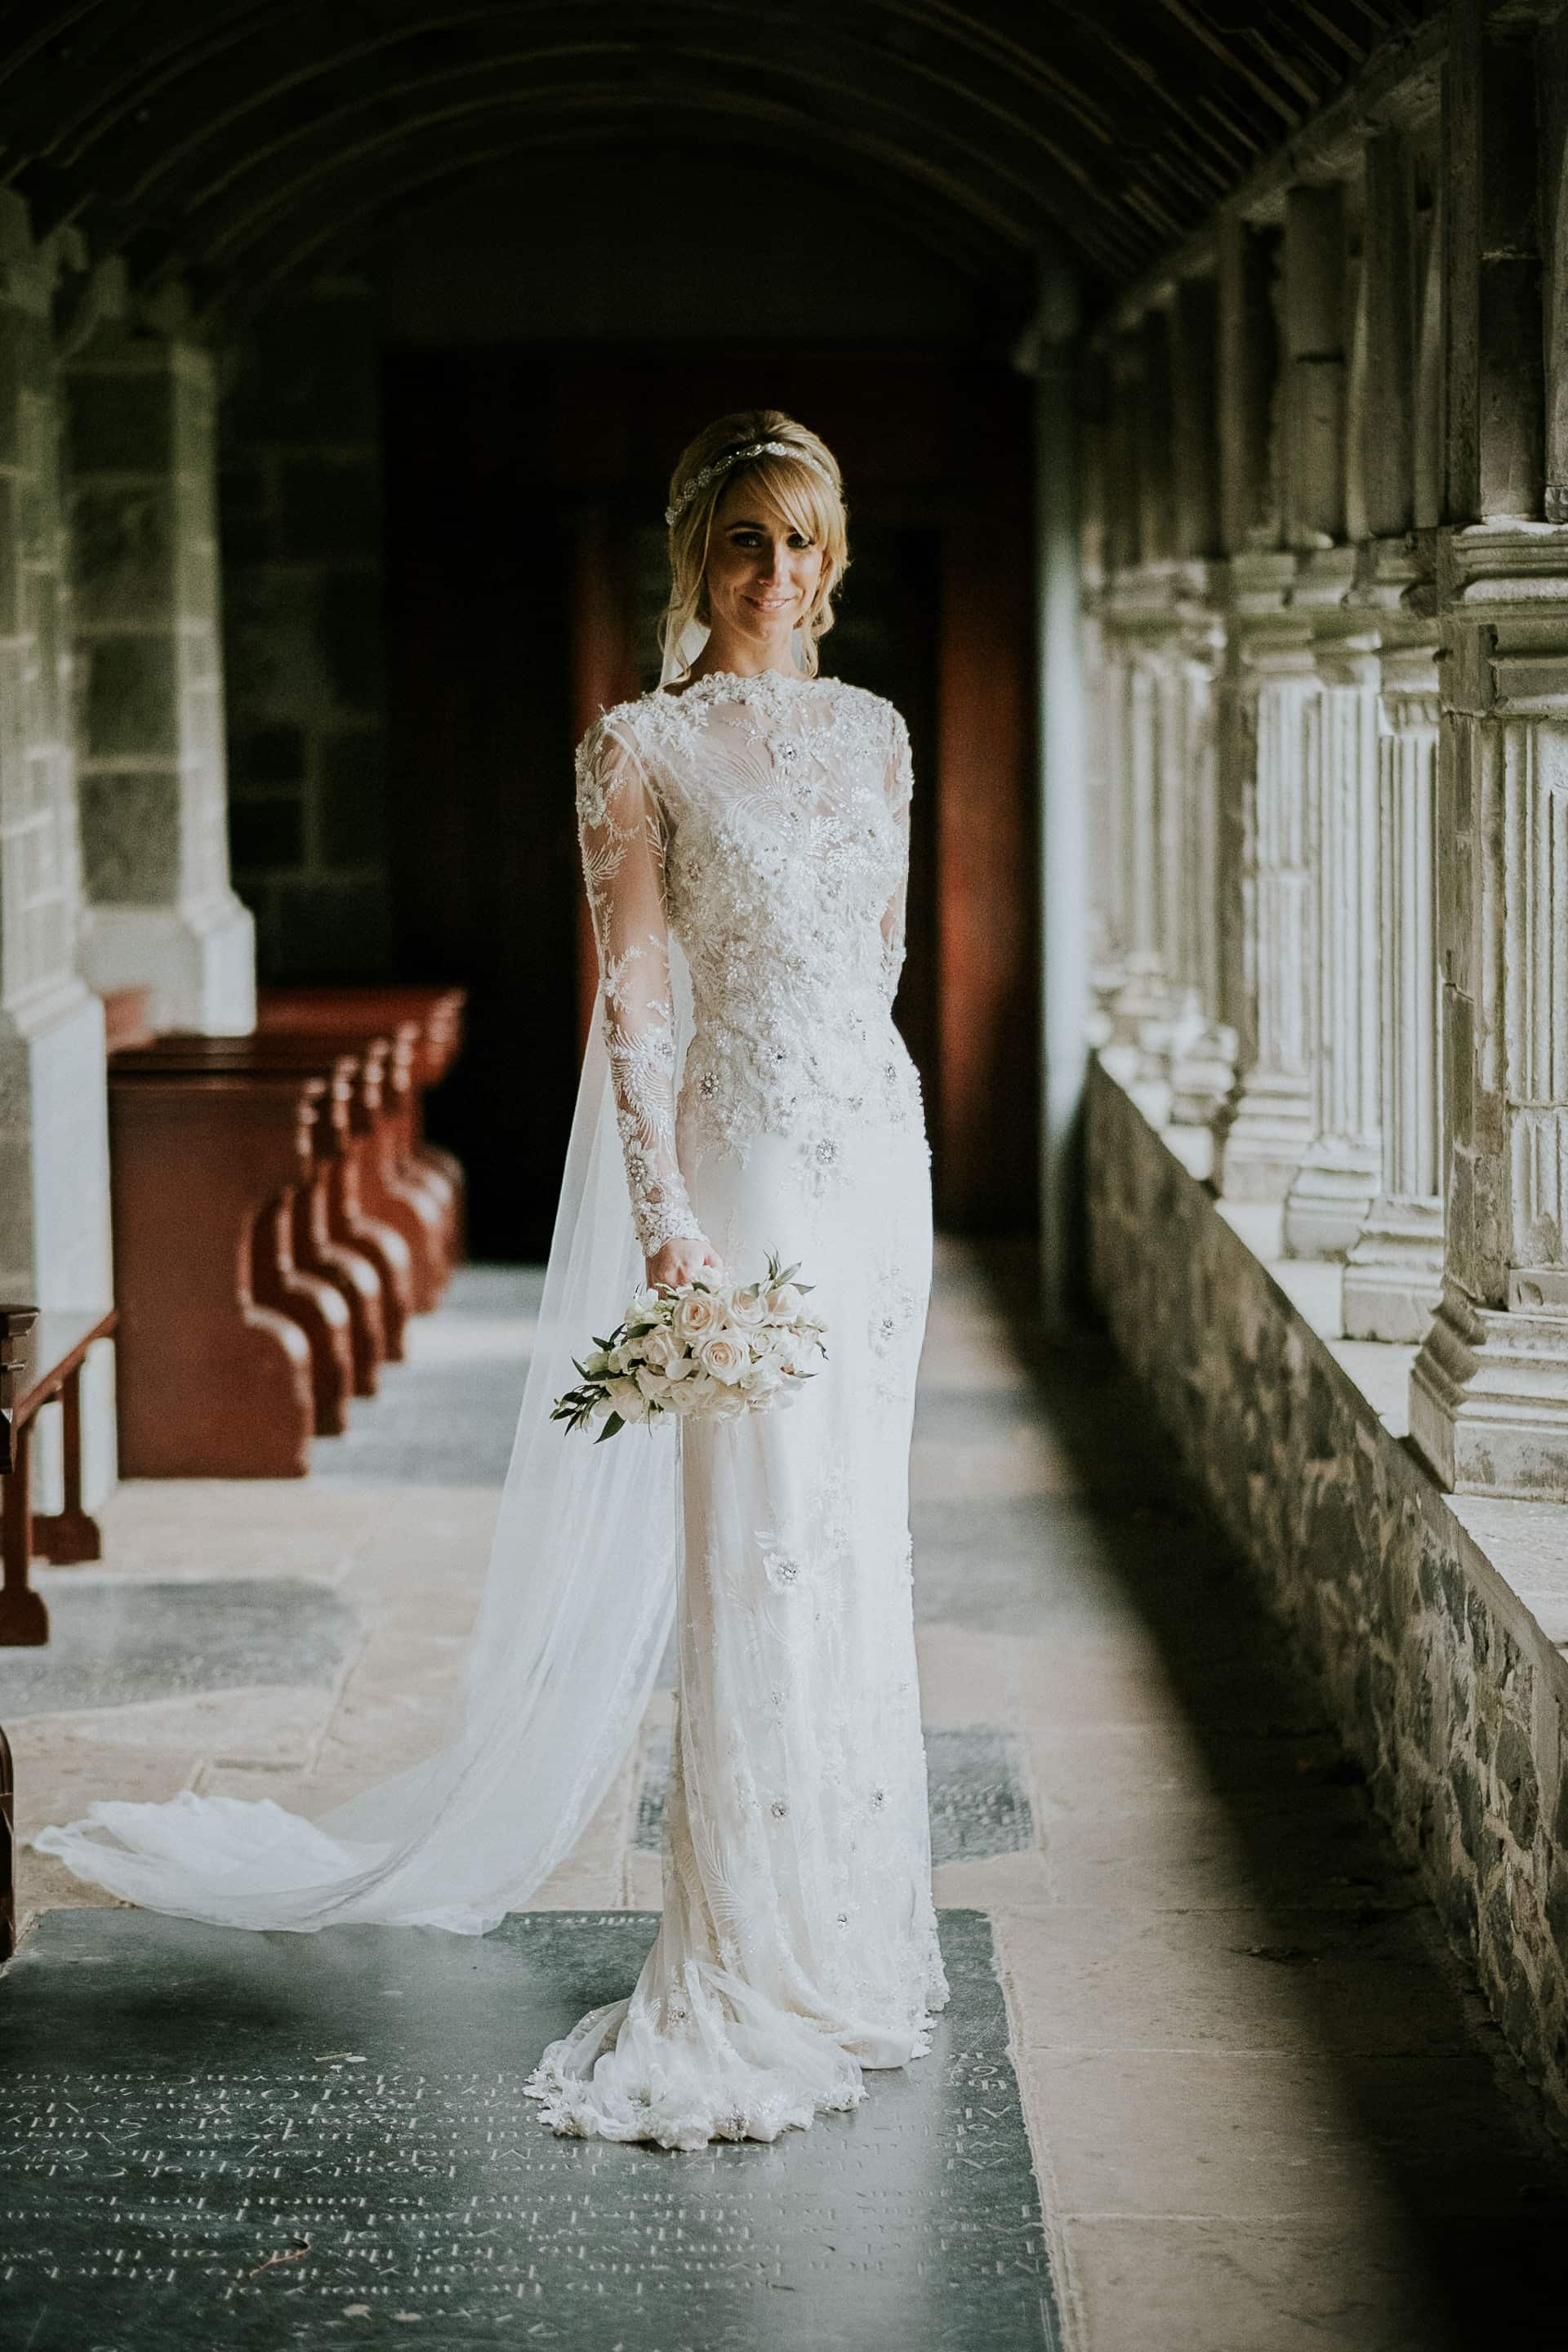 Bridal Portrait at Holycross, Thurles